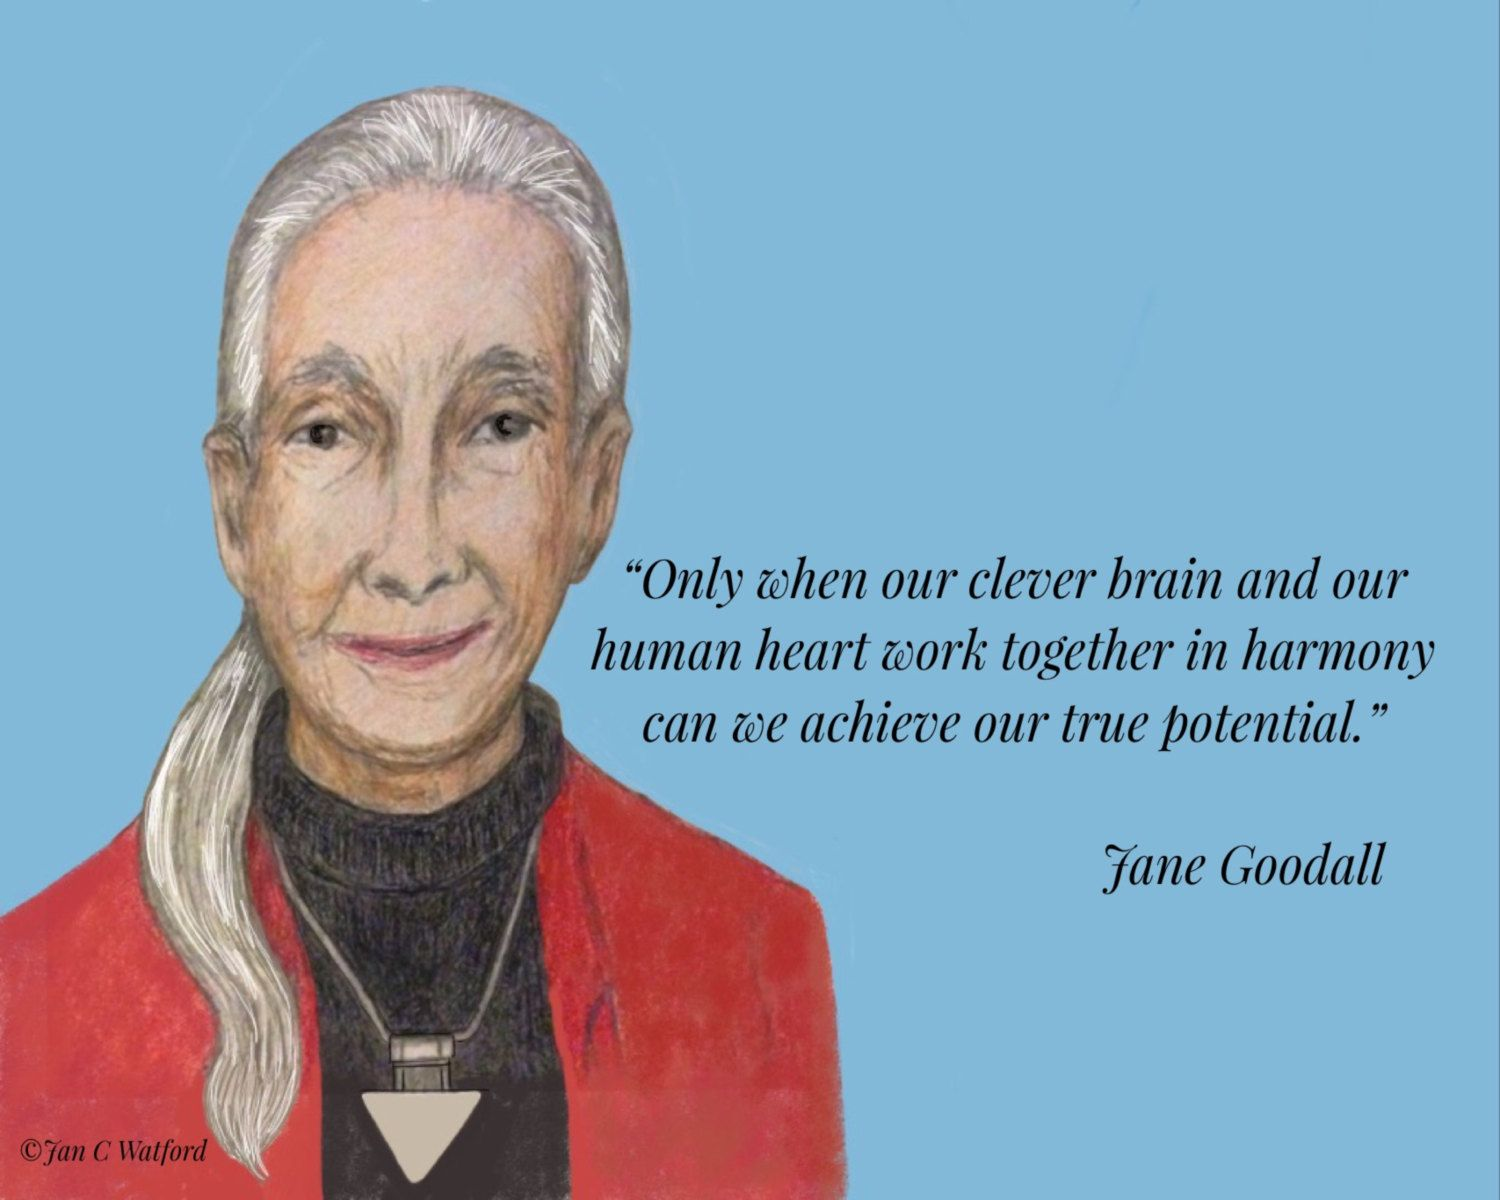 Jane Goodall, Inspirational Quote, Only when our clever